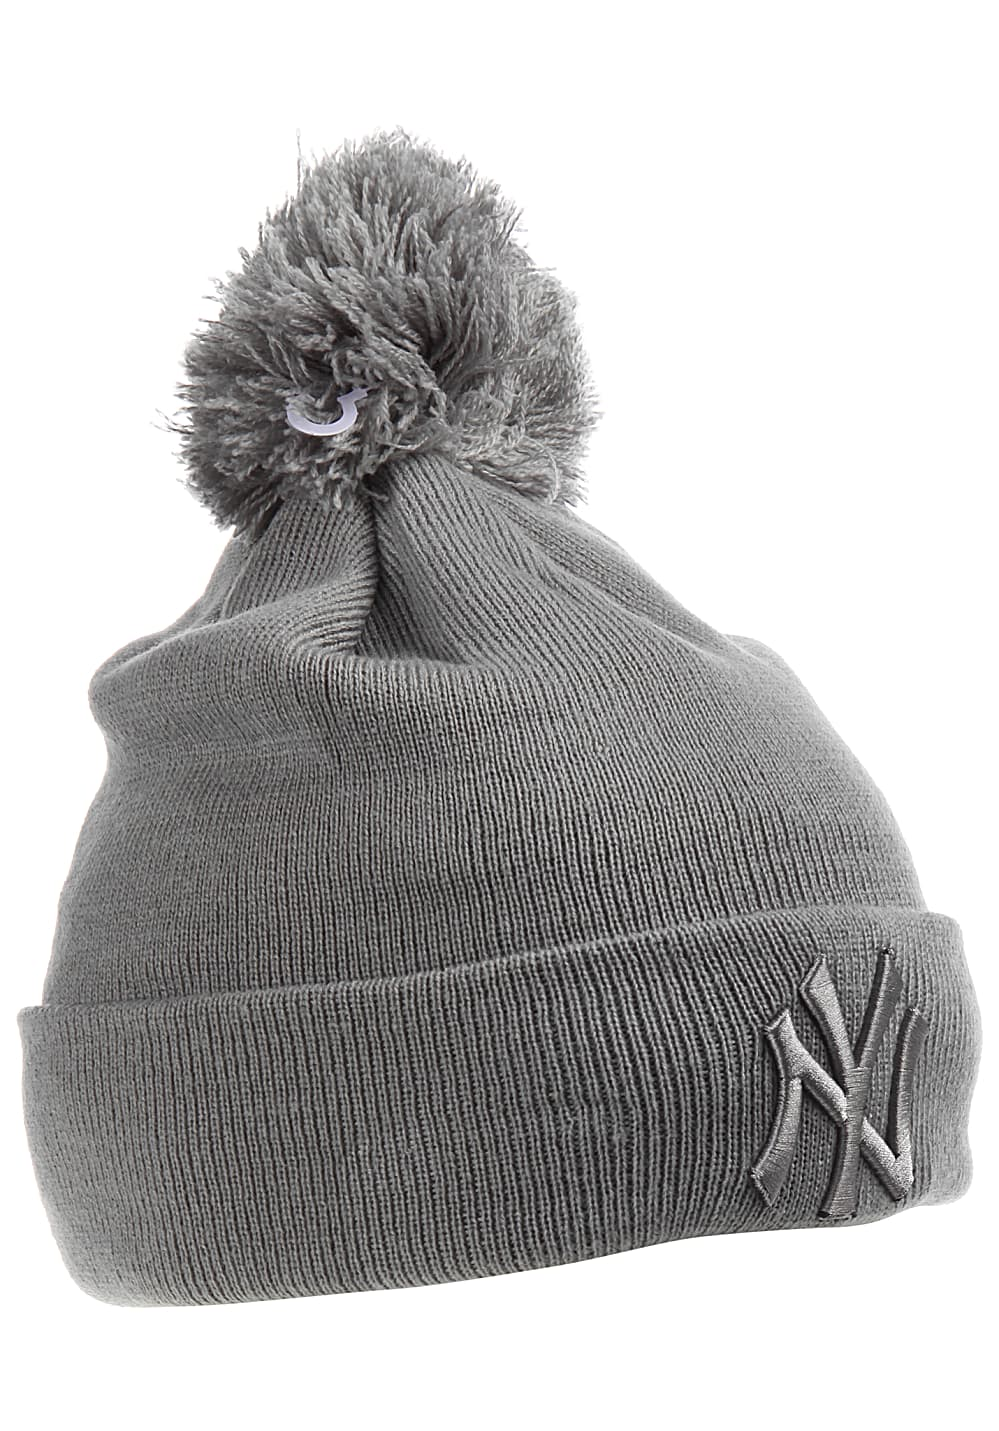 3cb4dfea2a637 ... NEW Era Bobble Cuff New York Yankees - Beanie for Women - Grey. Back to  Overview. 1  2  3  4. Previous. Next